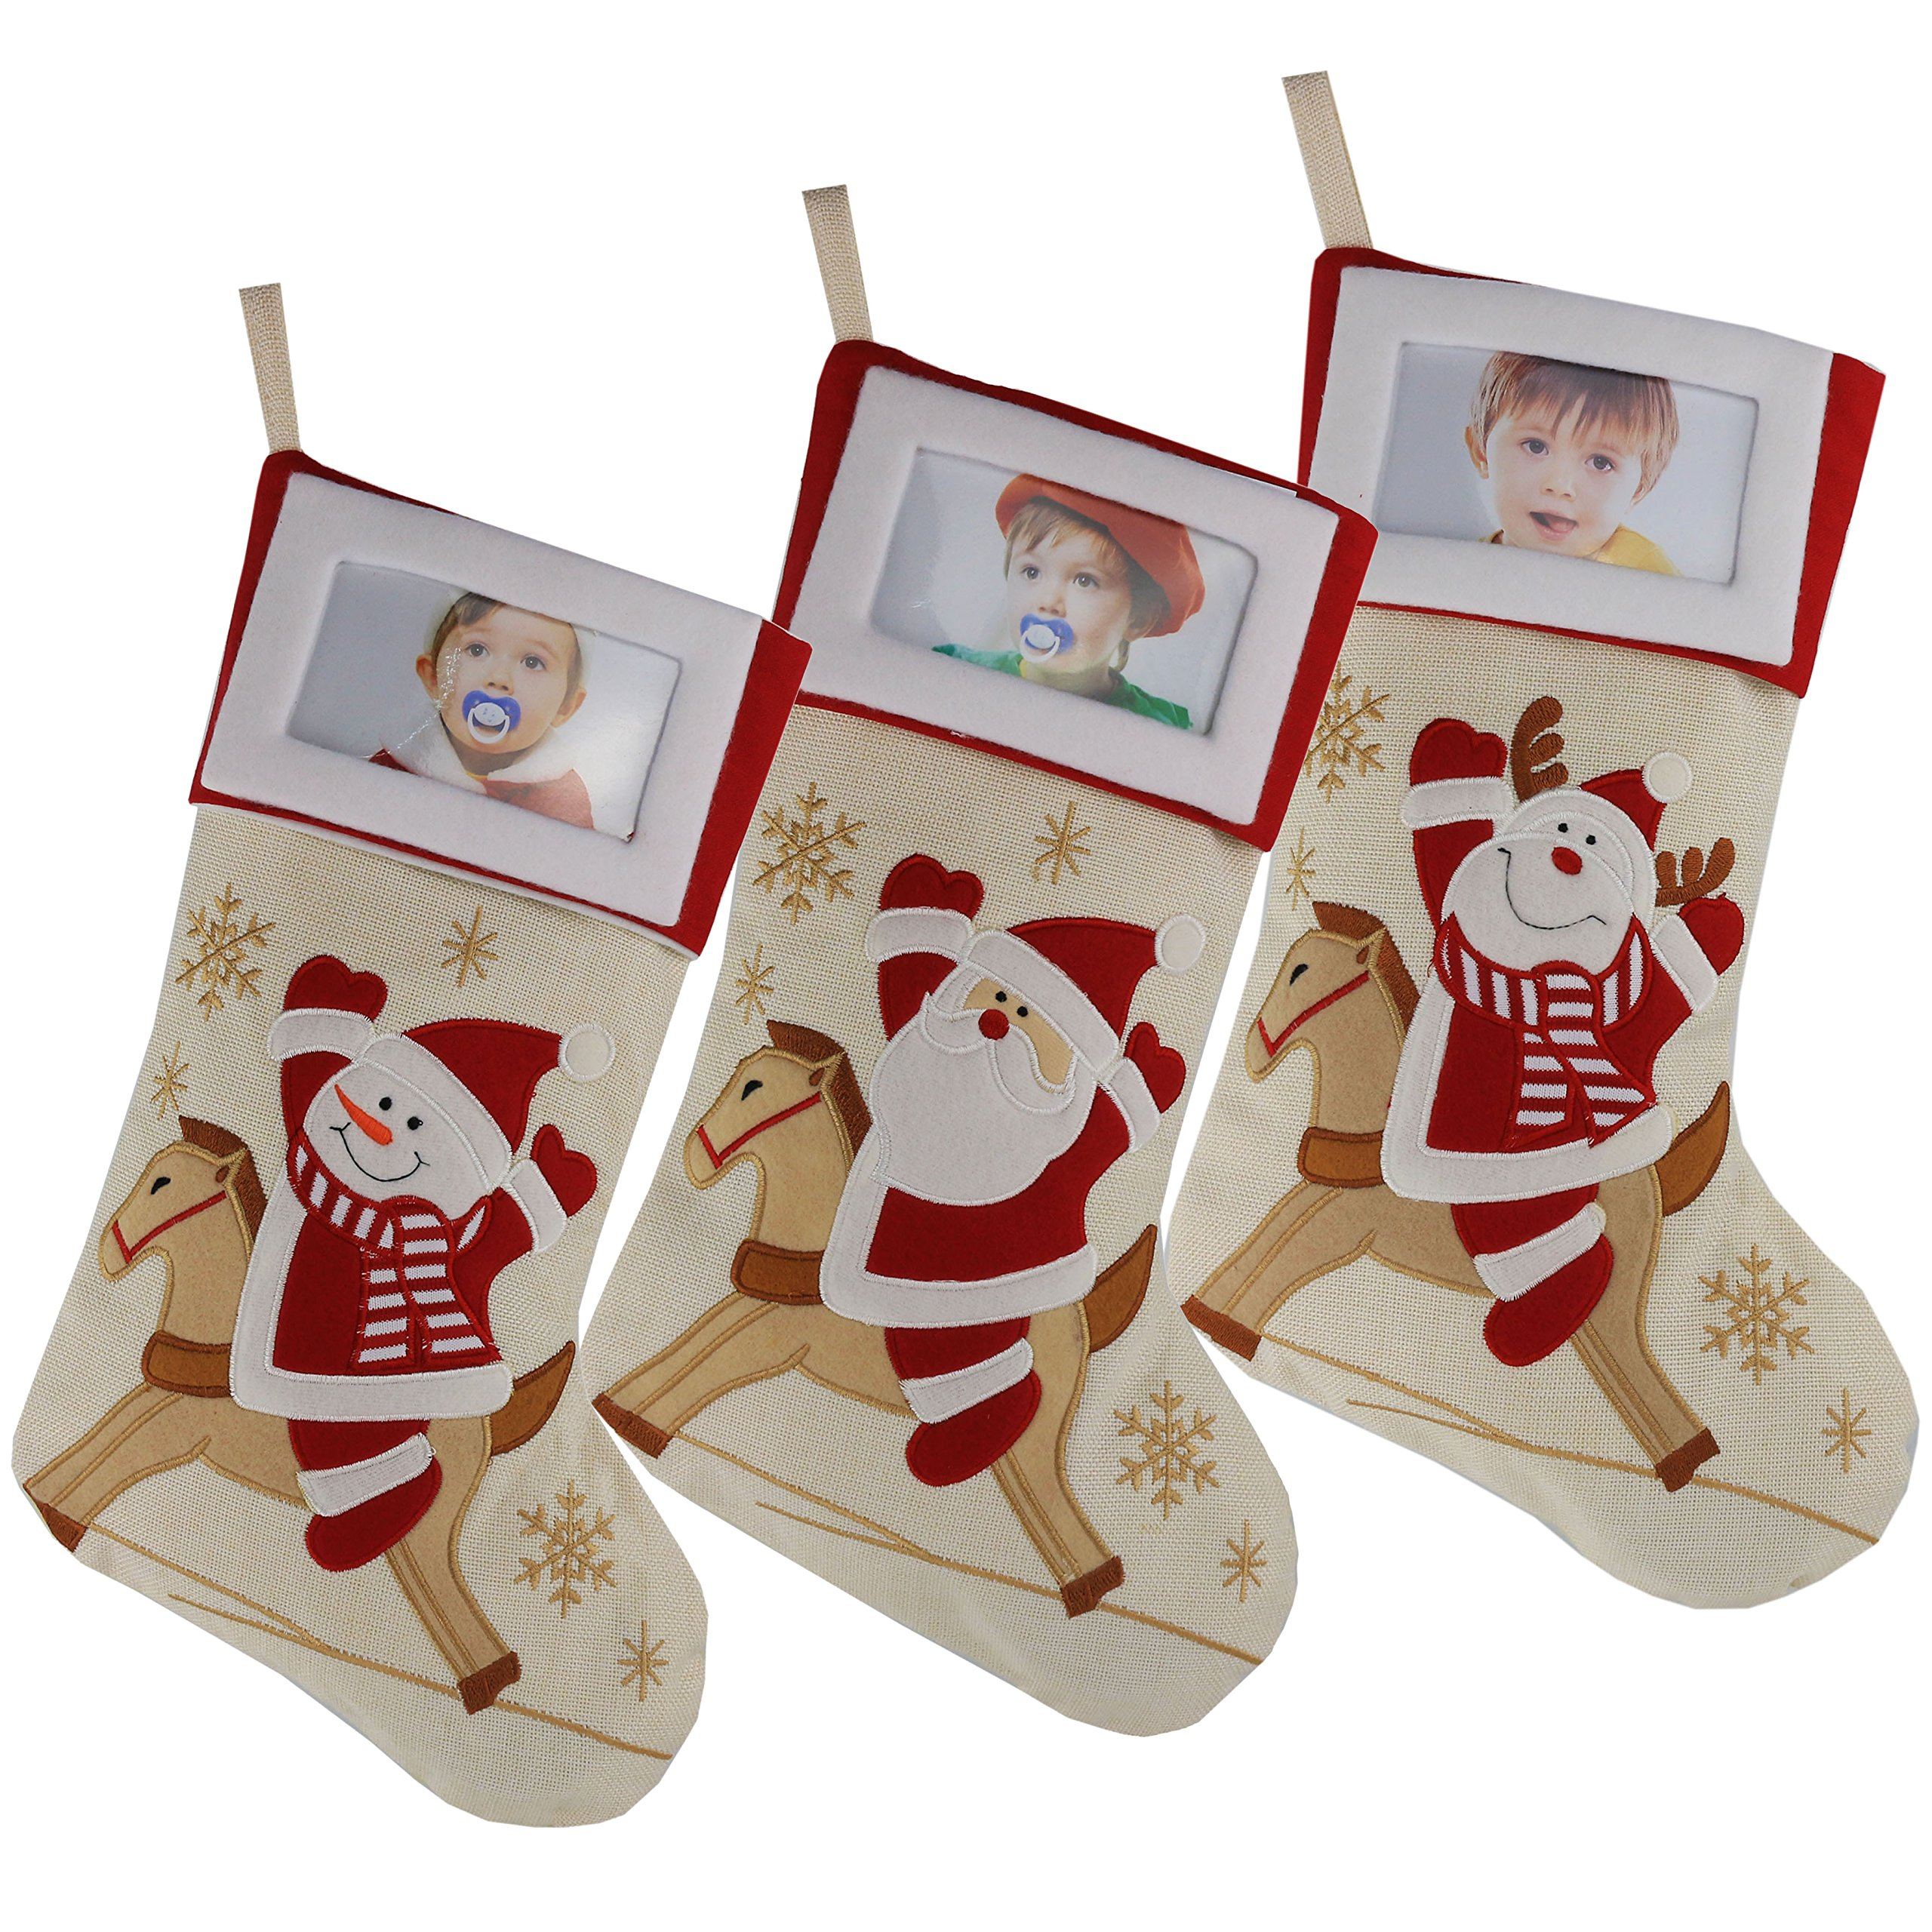 WEWILL Creative Christamas Stockings with Photo Frame Holder, Featuring Reindeer Snowman Santa,Red,Large, 16 Inch, Set of 3(5) by WEWILL